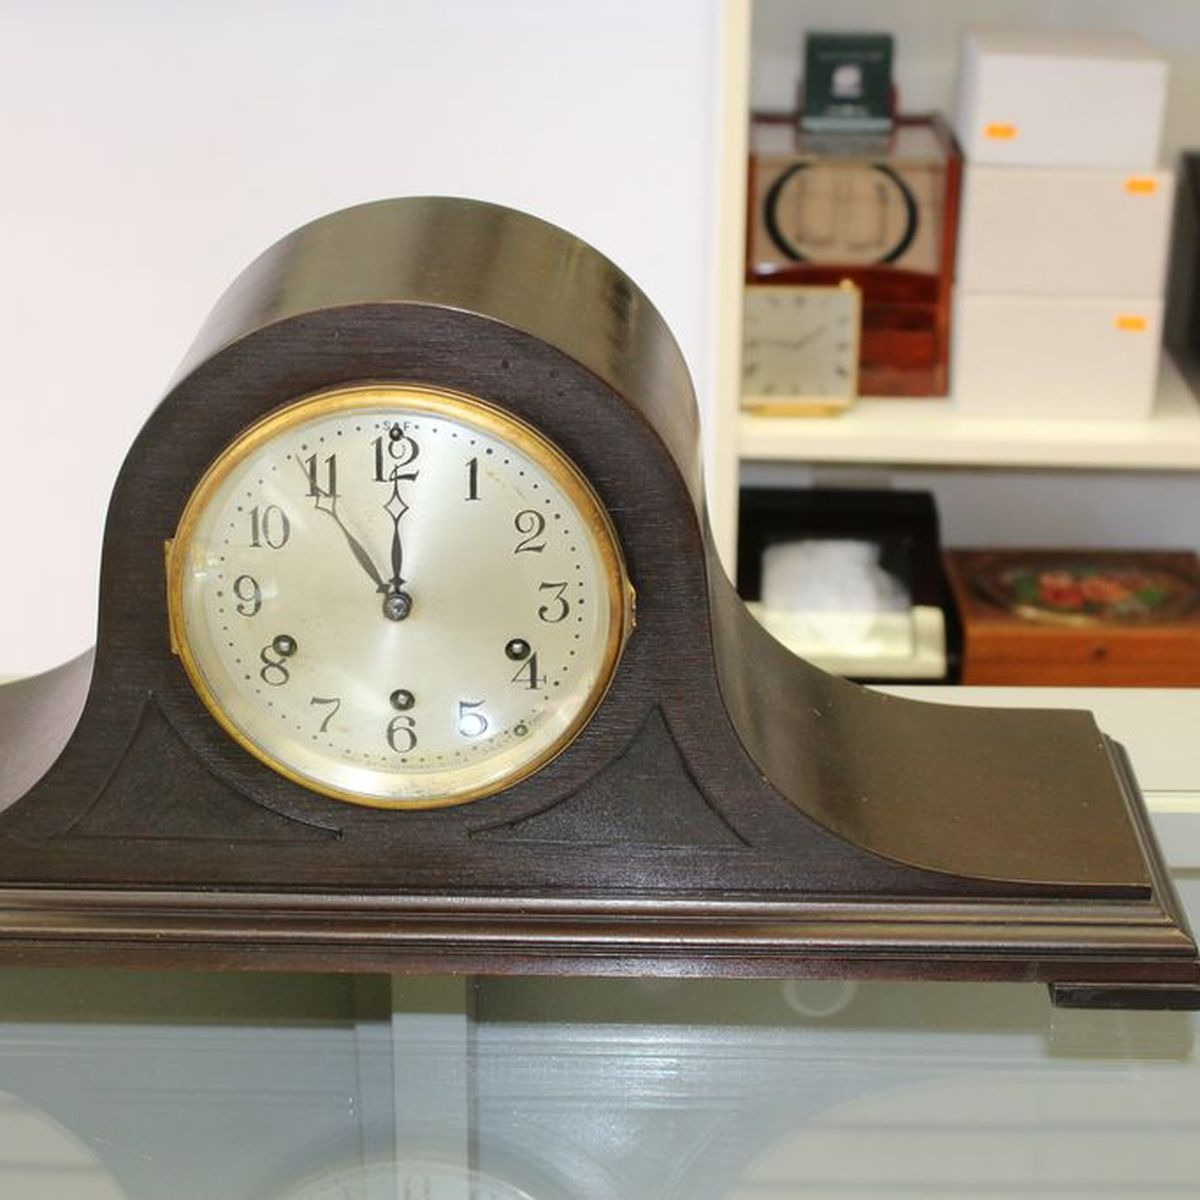 Choosing Between a Sligh Clock and a Hermle Clock